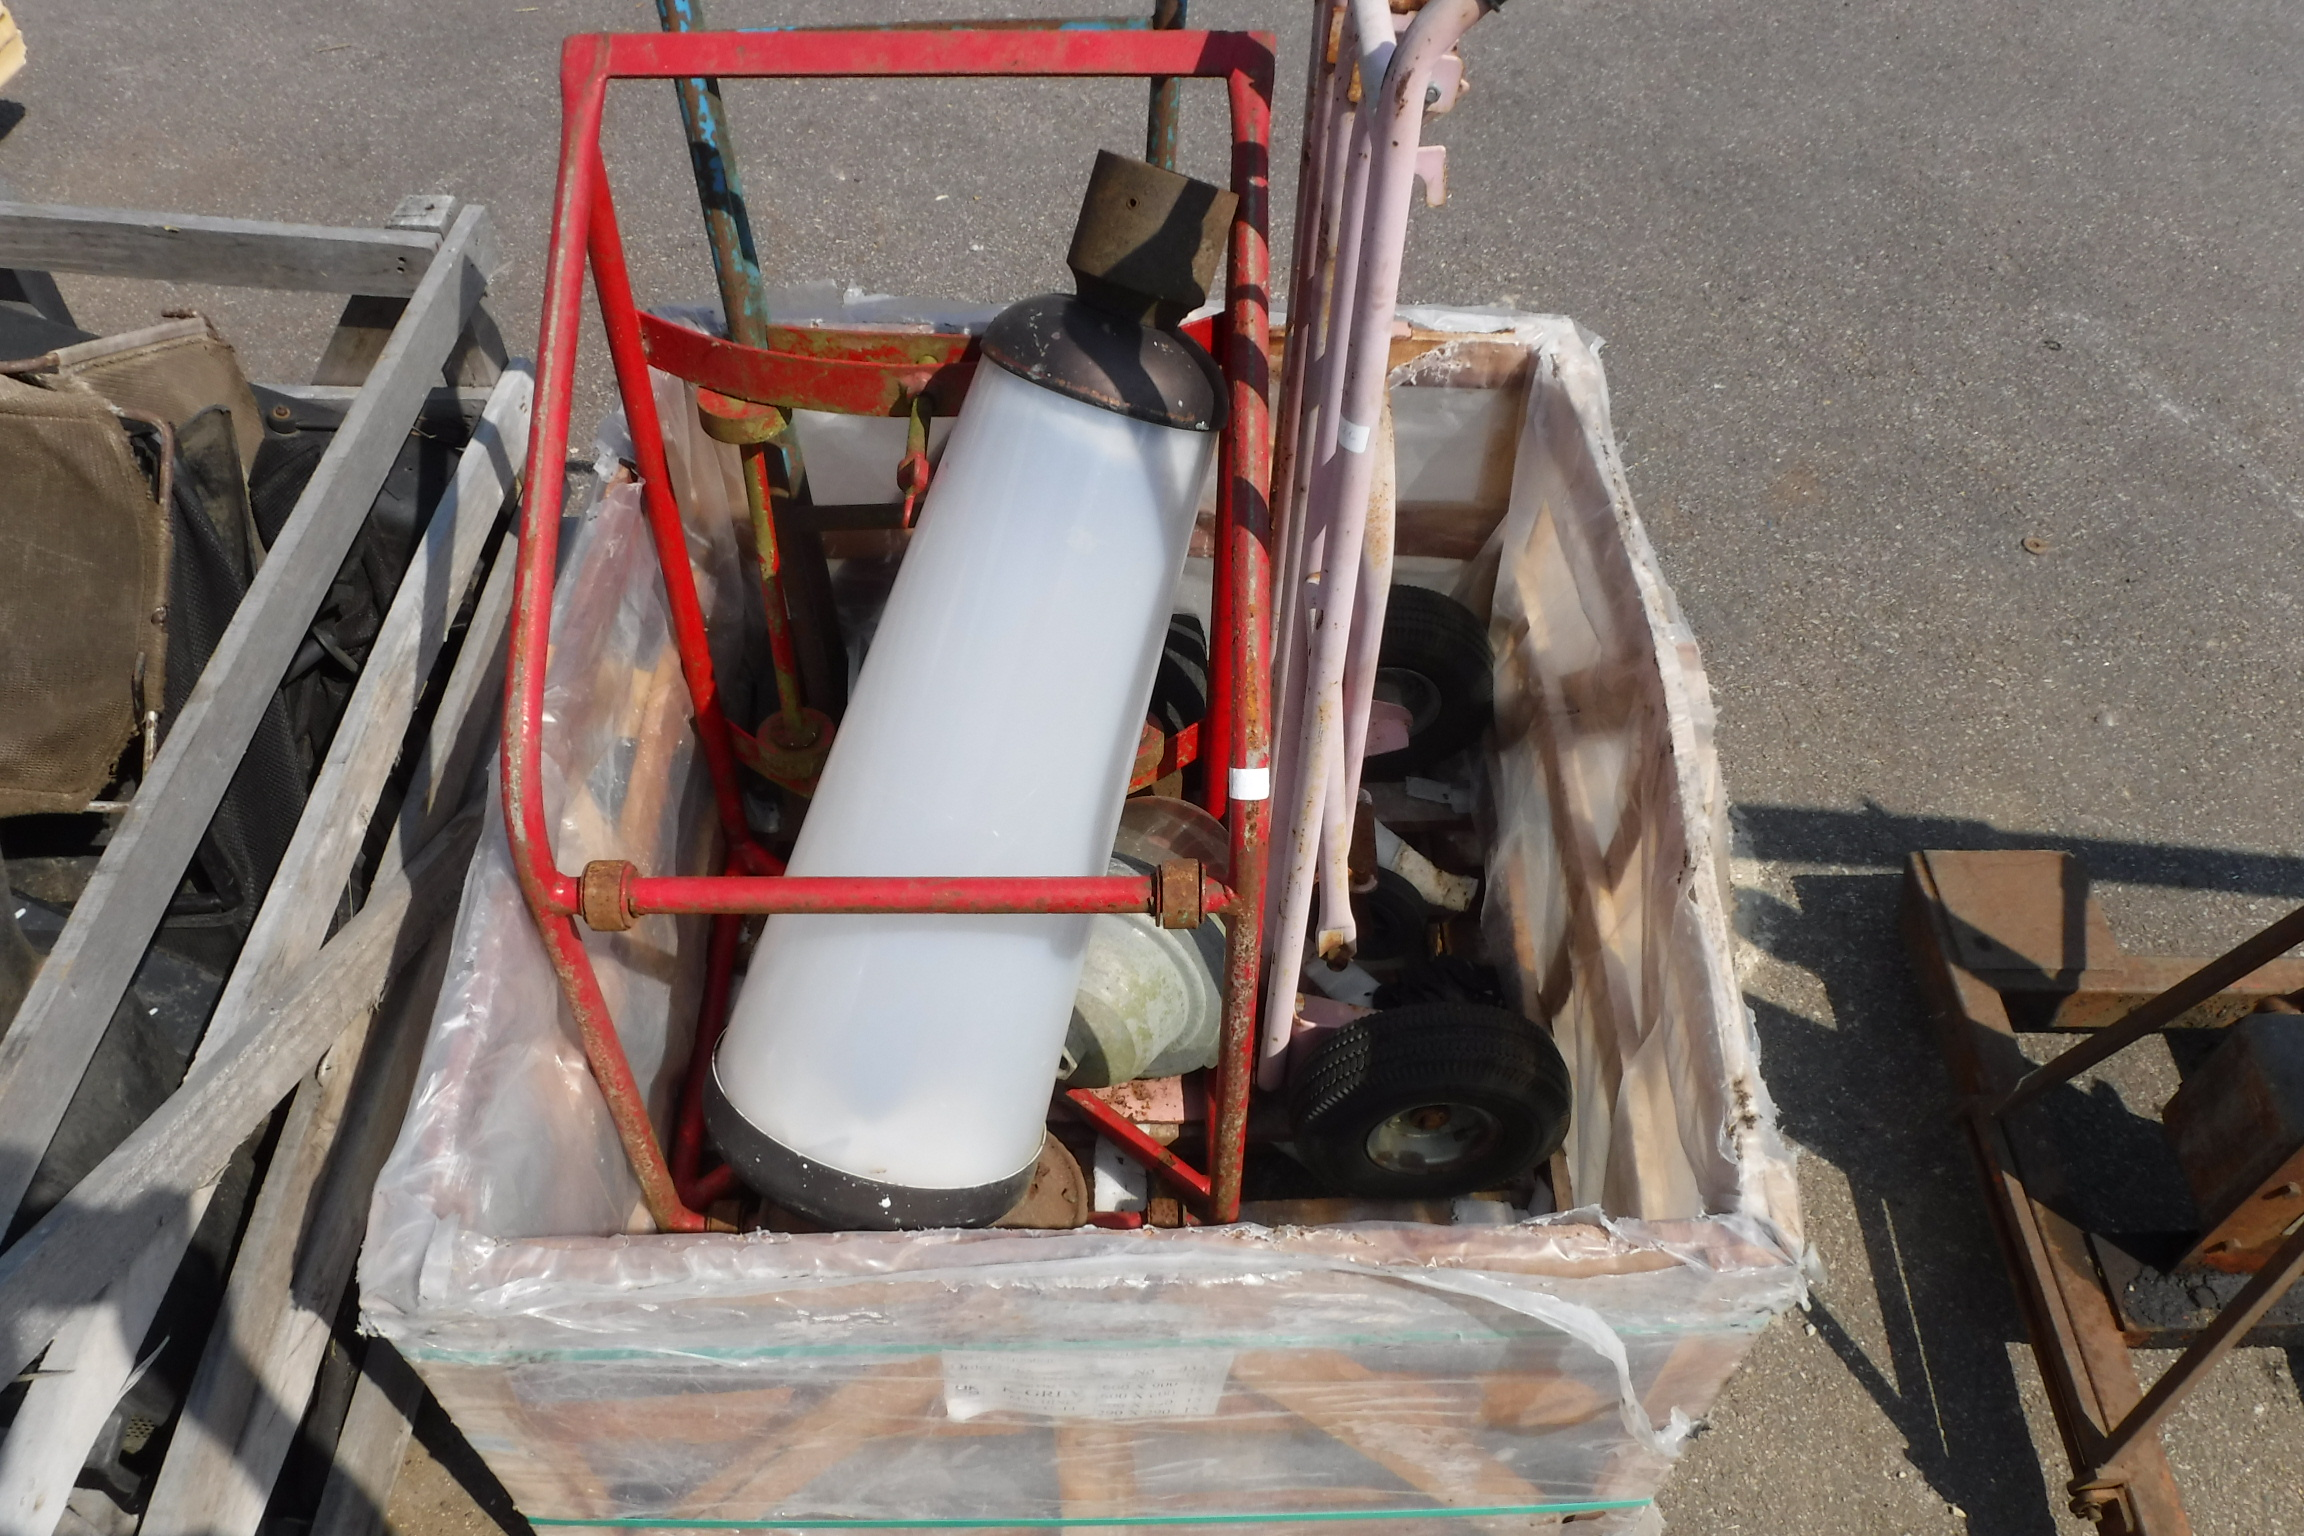 Sack barrows and assorted outdoor lamps and metalwork